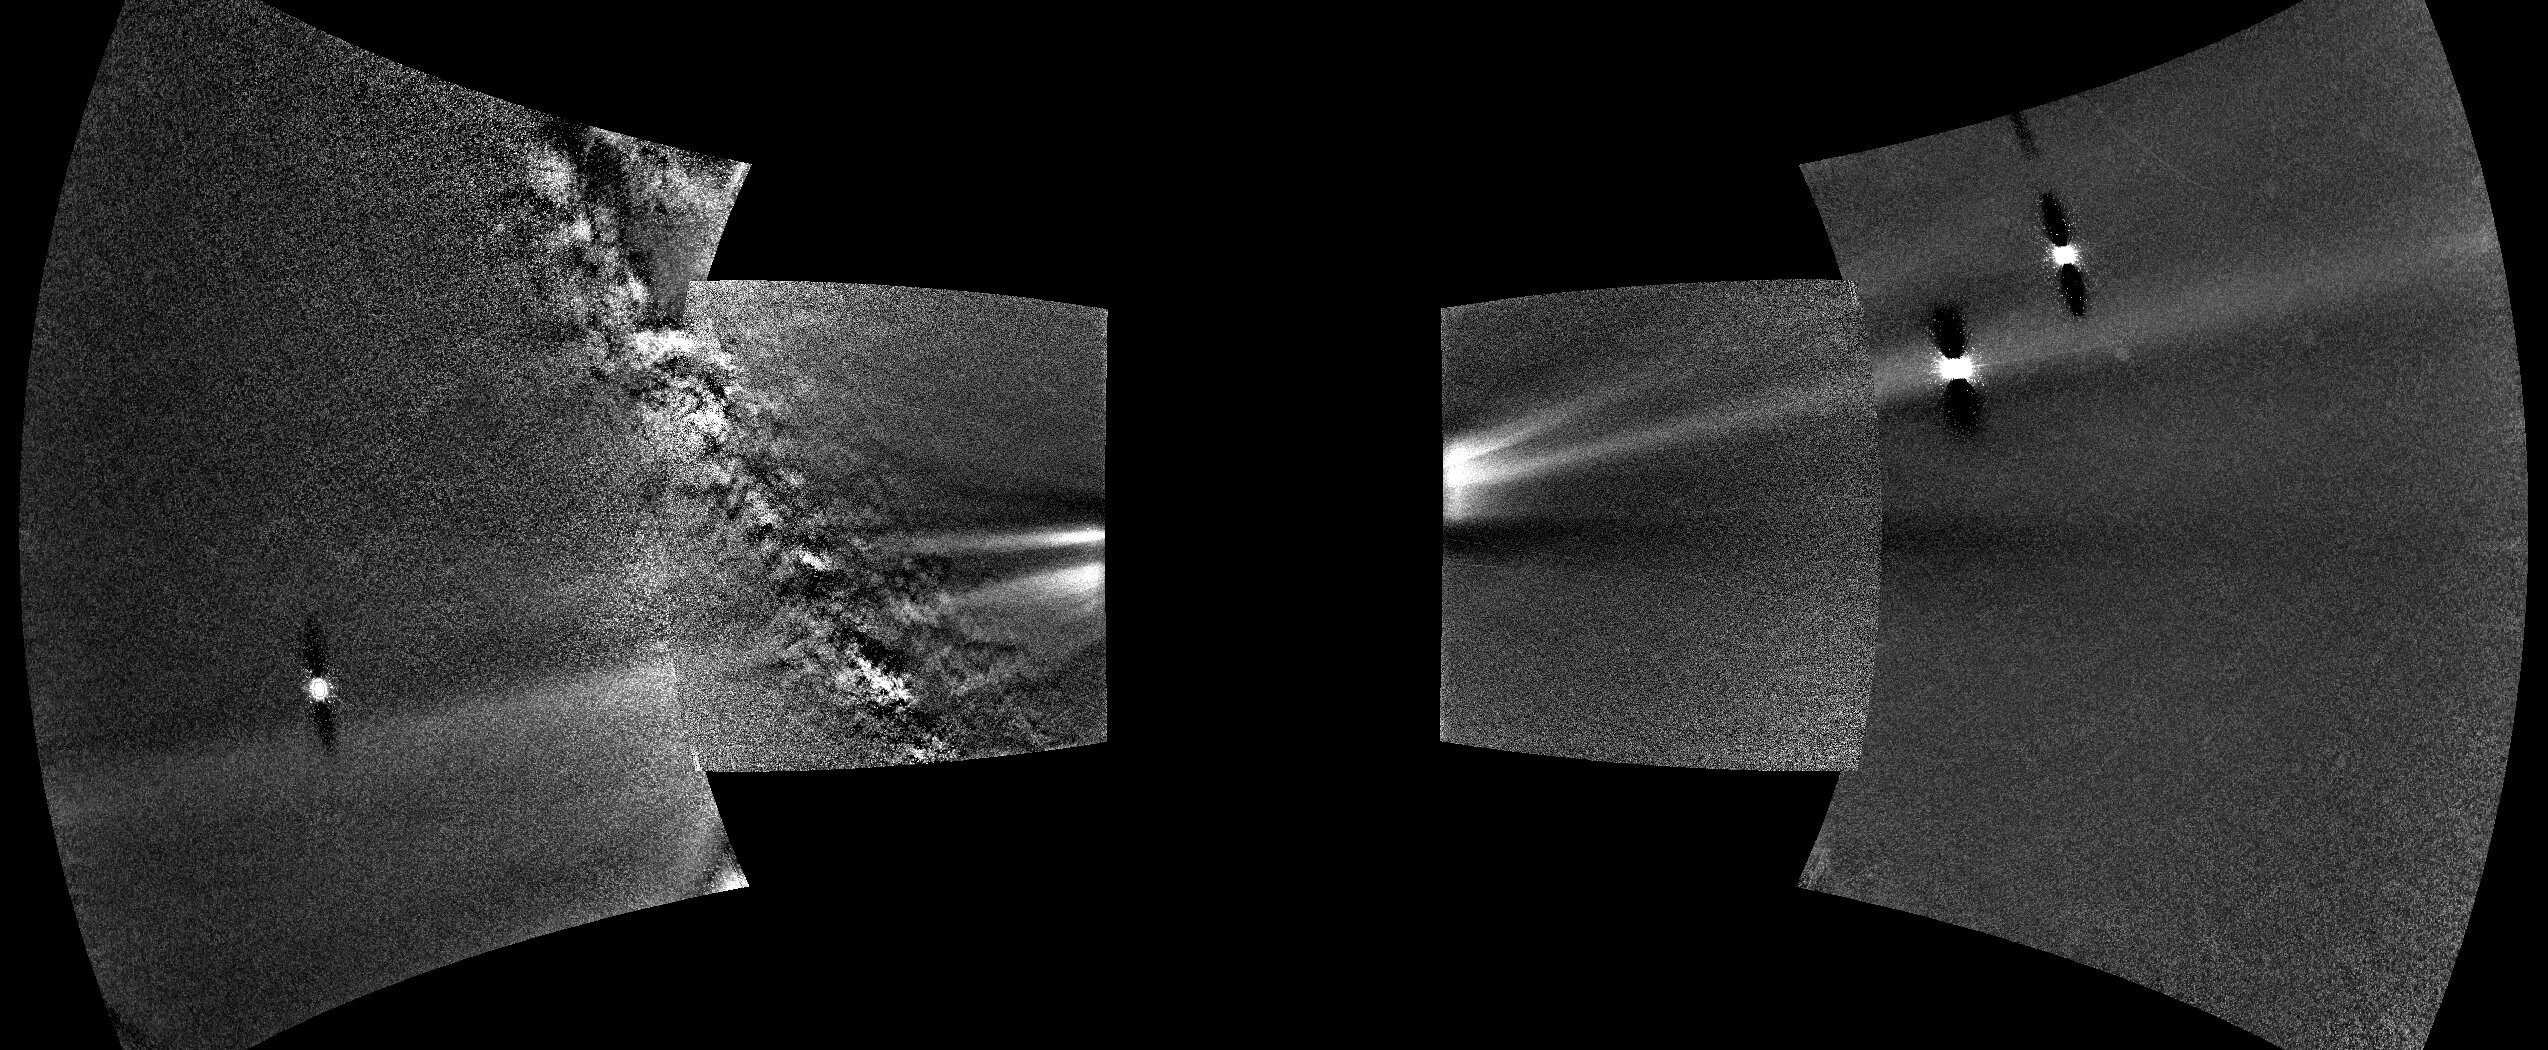 Parker Solar Probe sees Venus orbital dust ring in first complete view